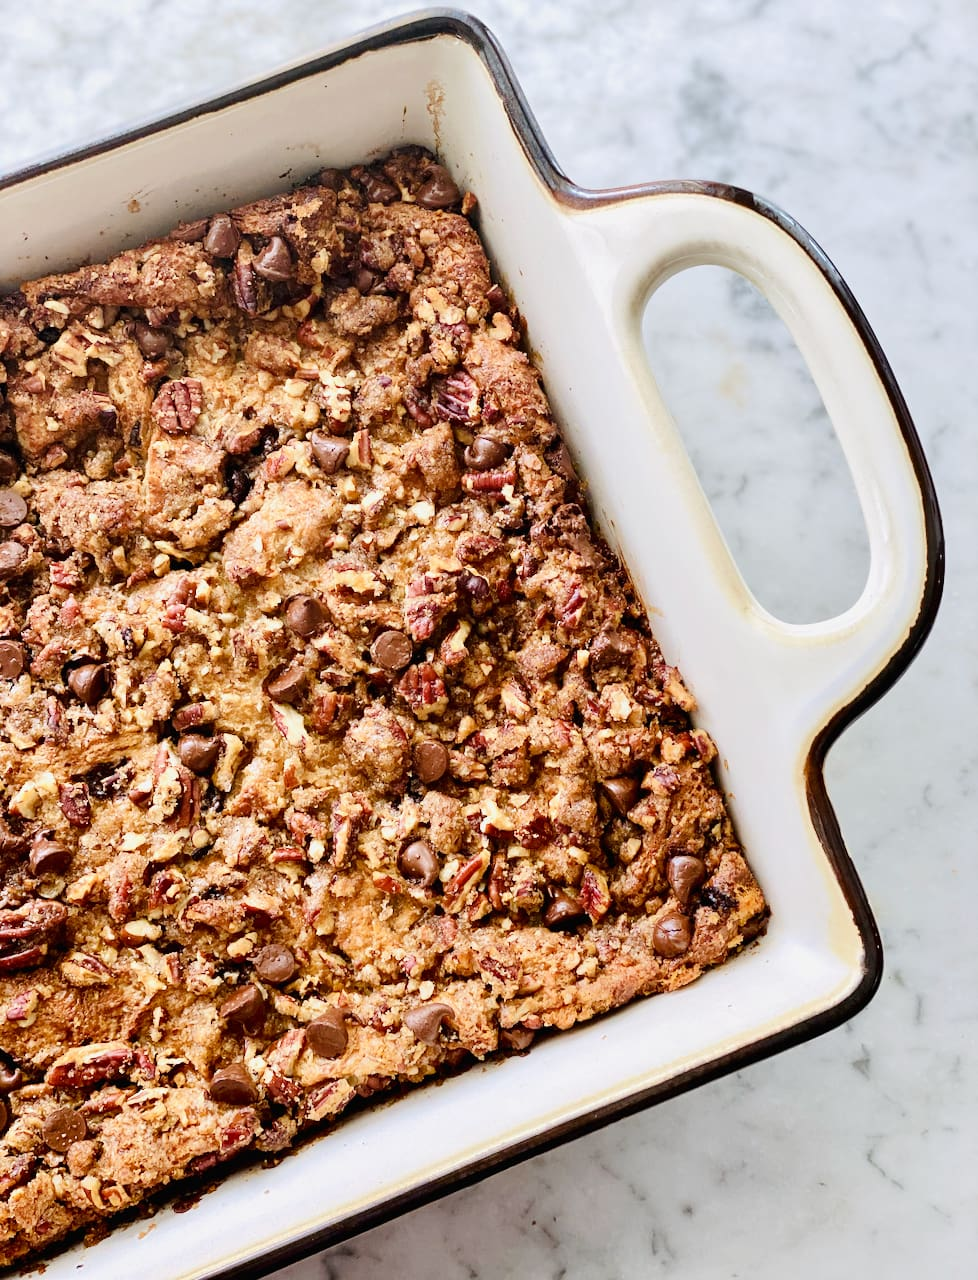 chocolate bread pudding in a white casserole dish with pecans on top